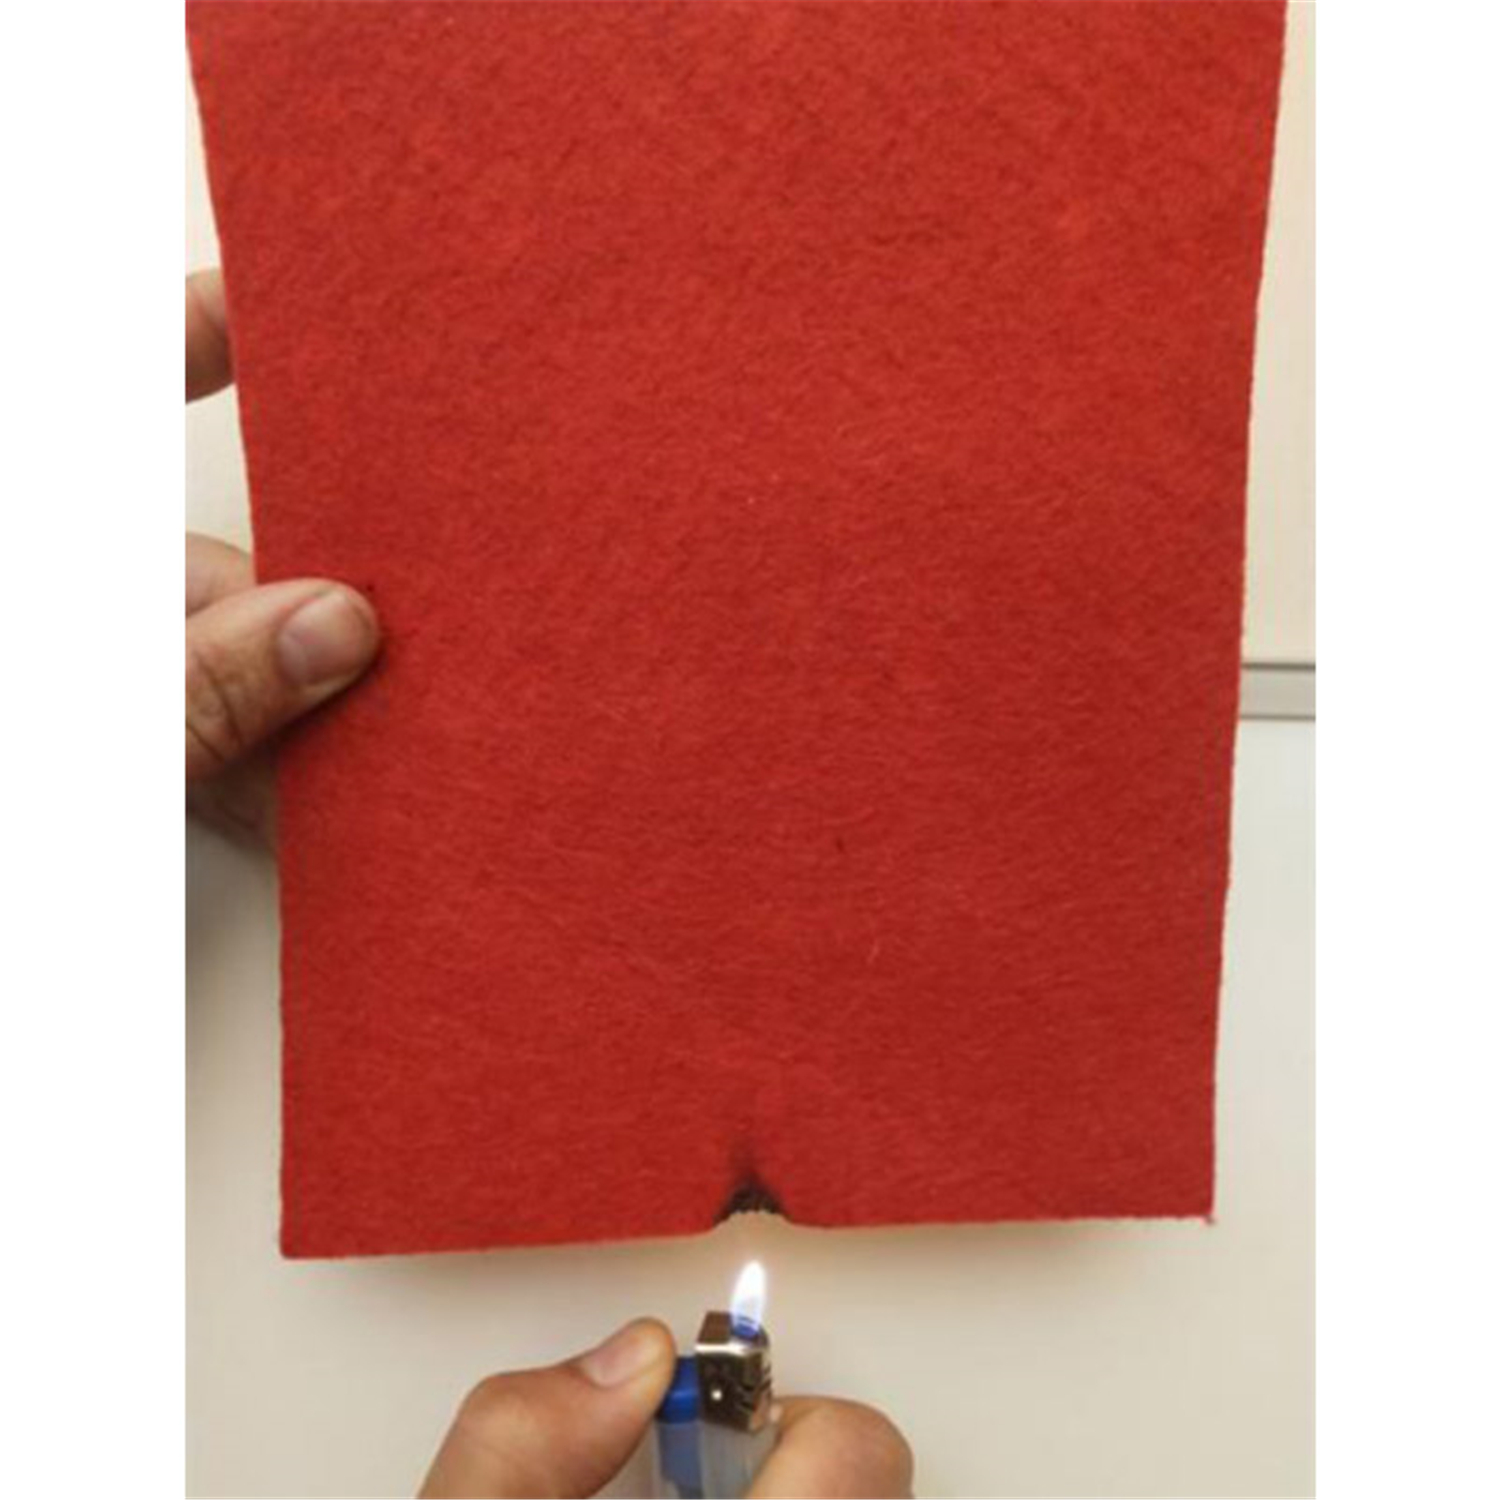 Fire Retardant Exhibtion Carpet